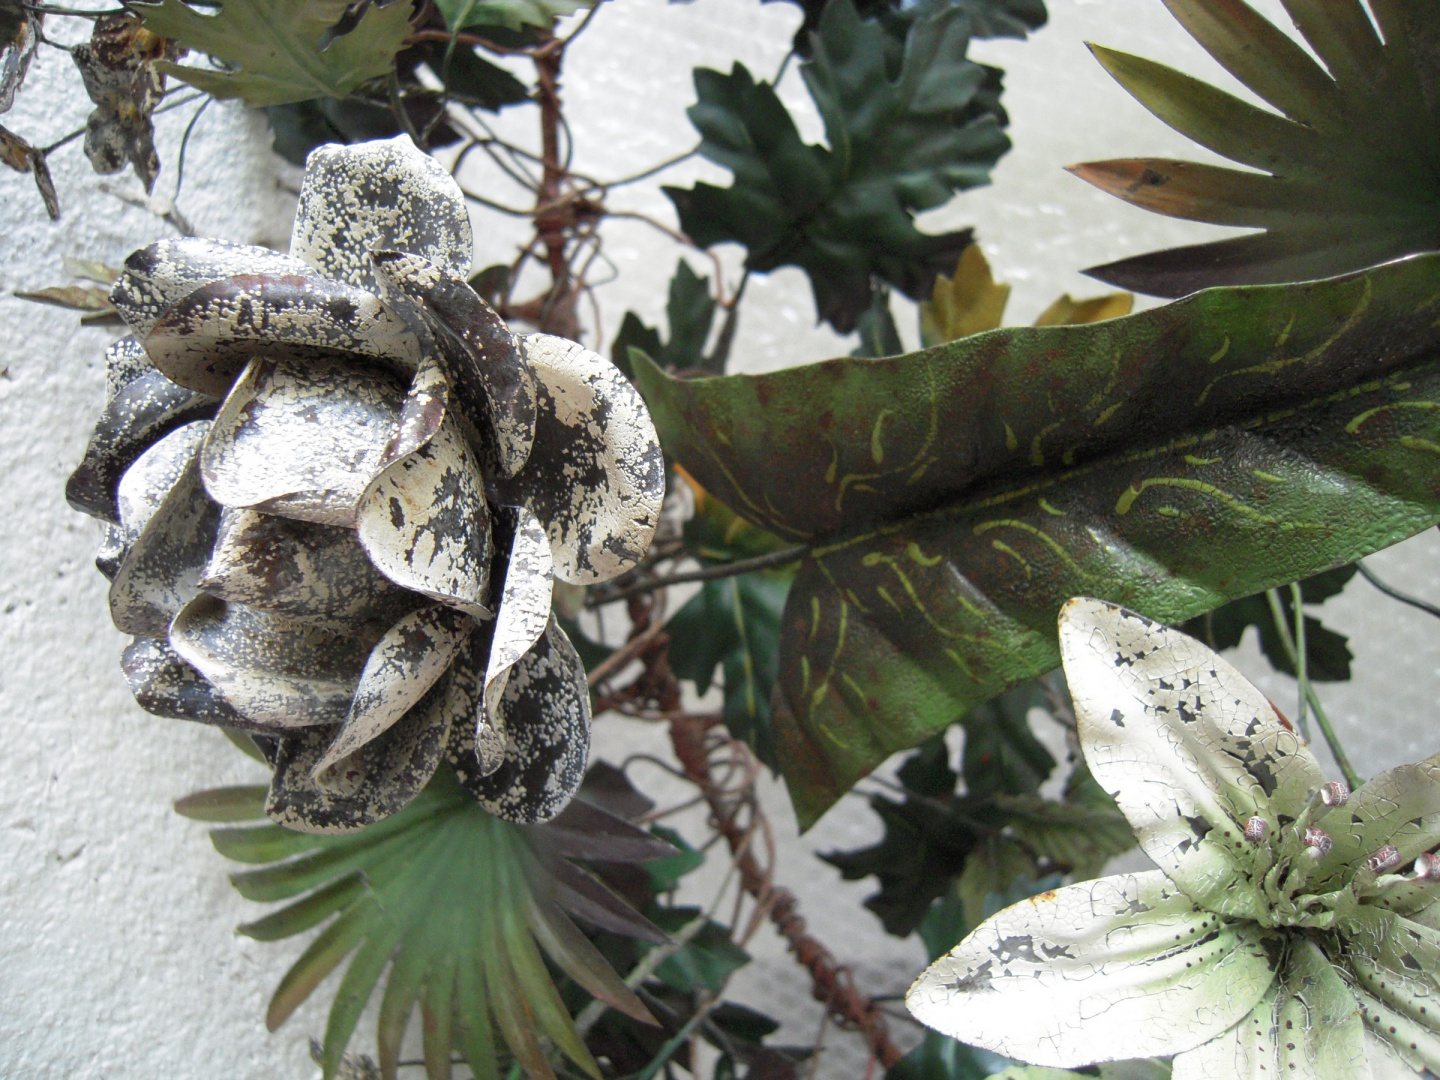 ill 12. The loose parts of covering paint on the flowers were mechanically removed.